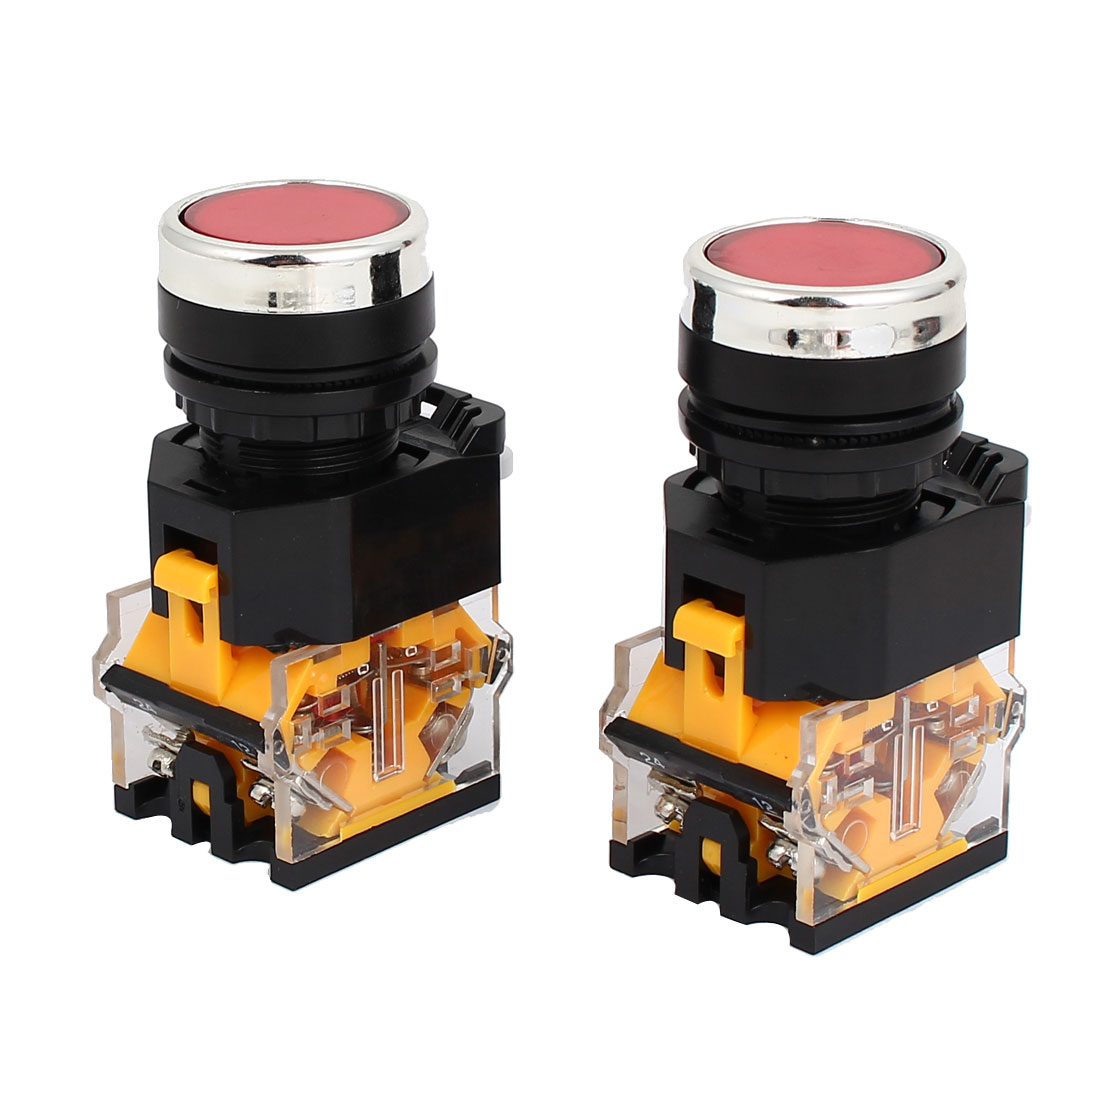 2pcs AC 220V Red Light LED Indicator Panel Mounted Self Locking Push Button Switch 660V 10A